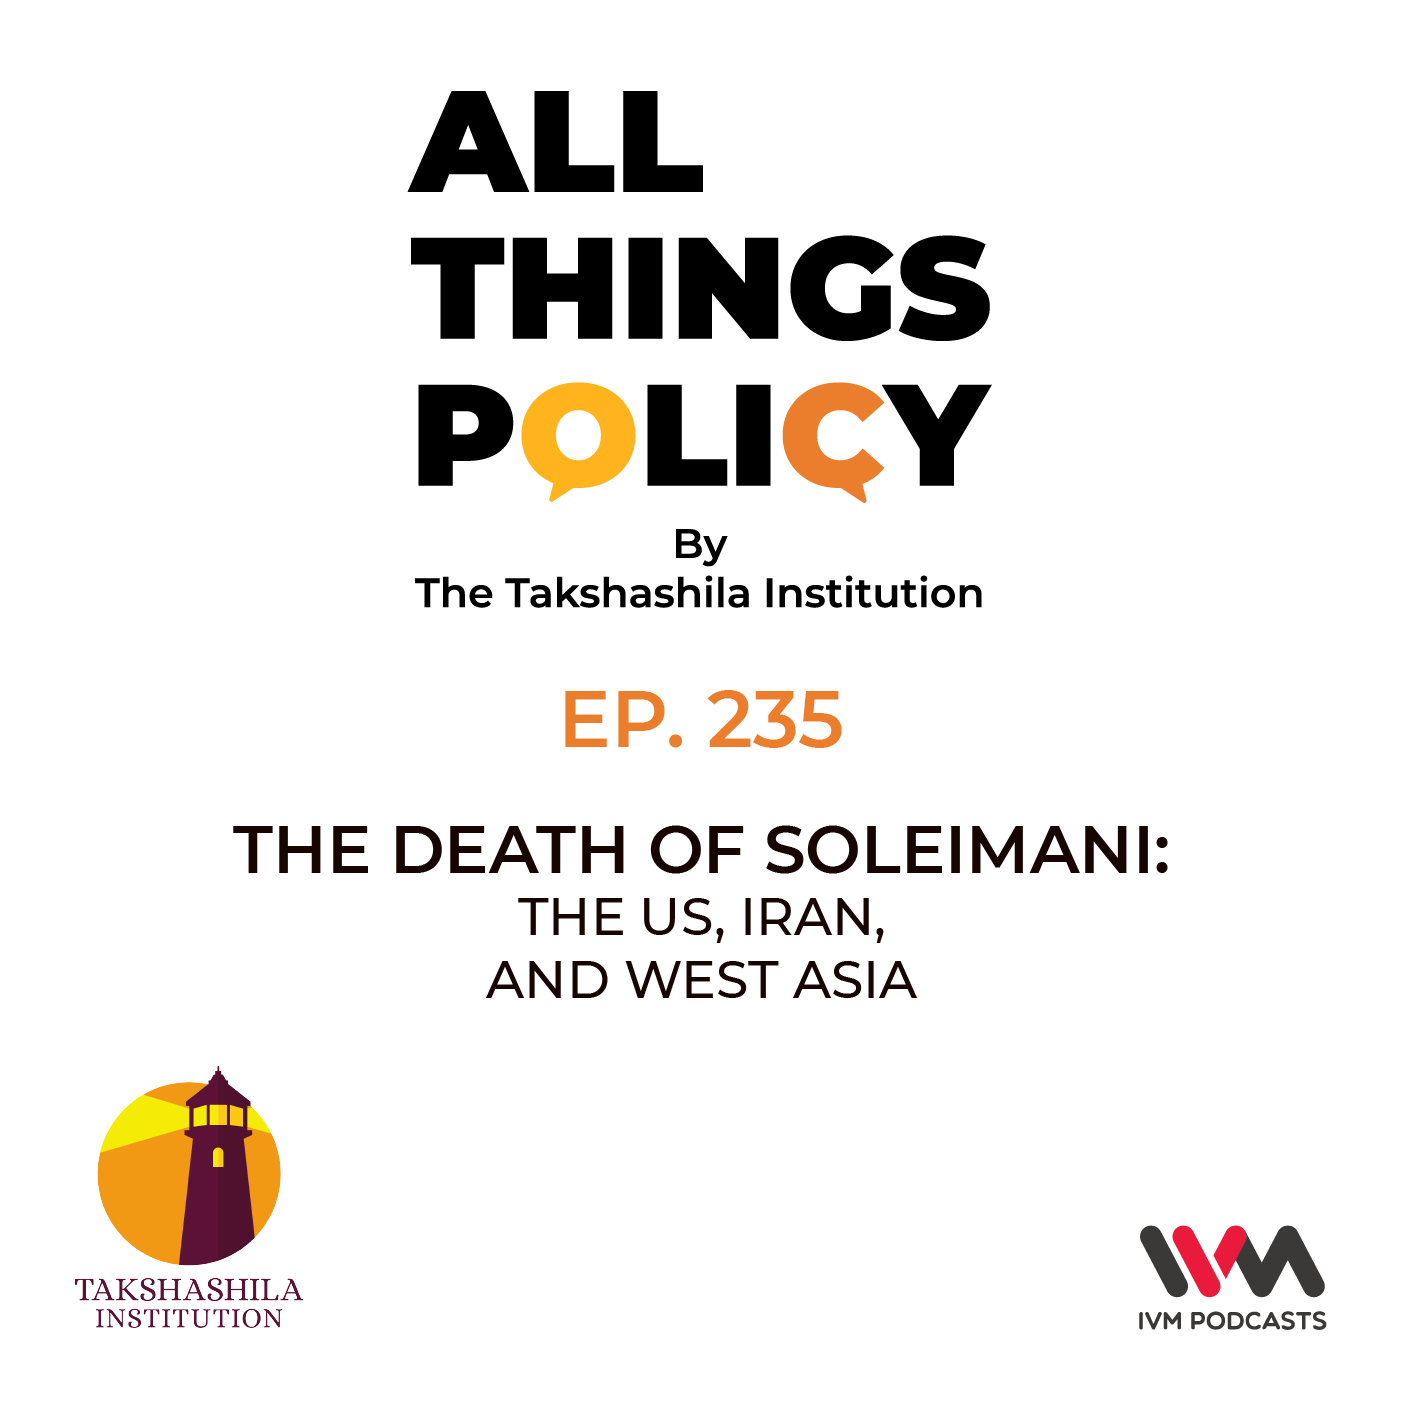 Ep. 235: The Death of Soleimani - The US, Iran, and West Asia